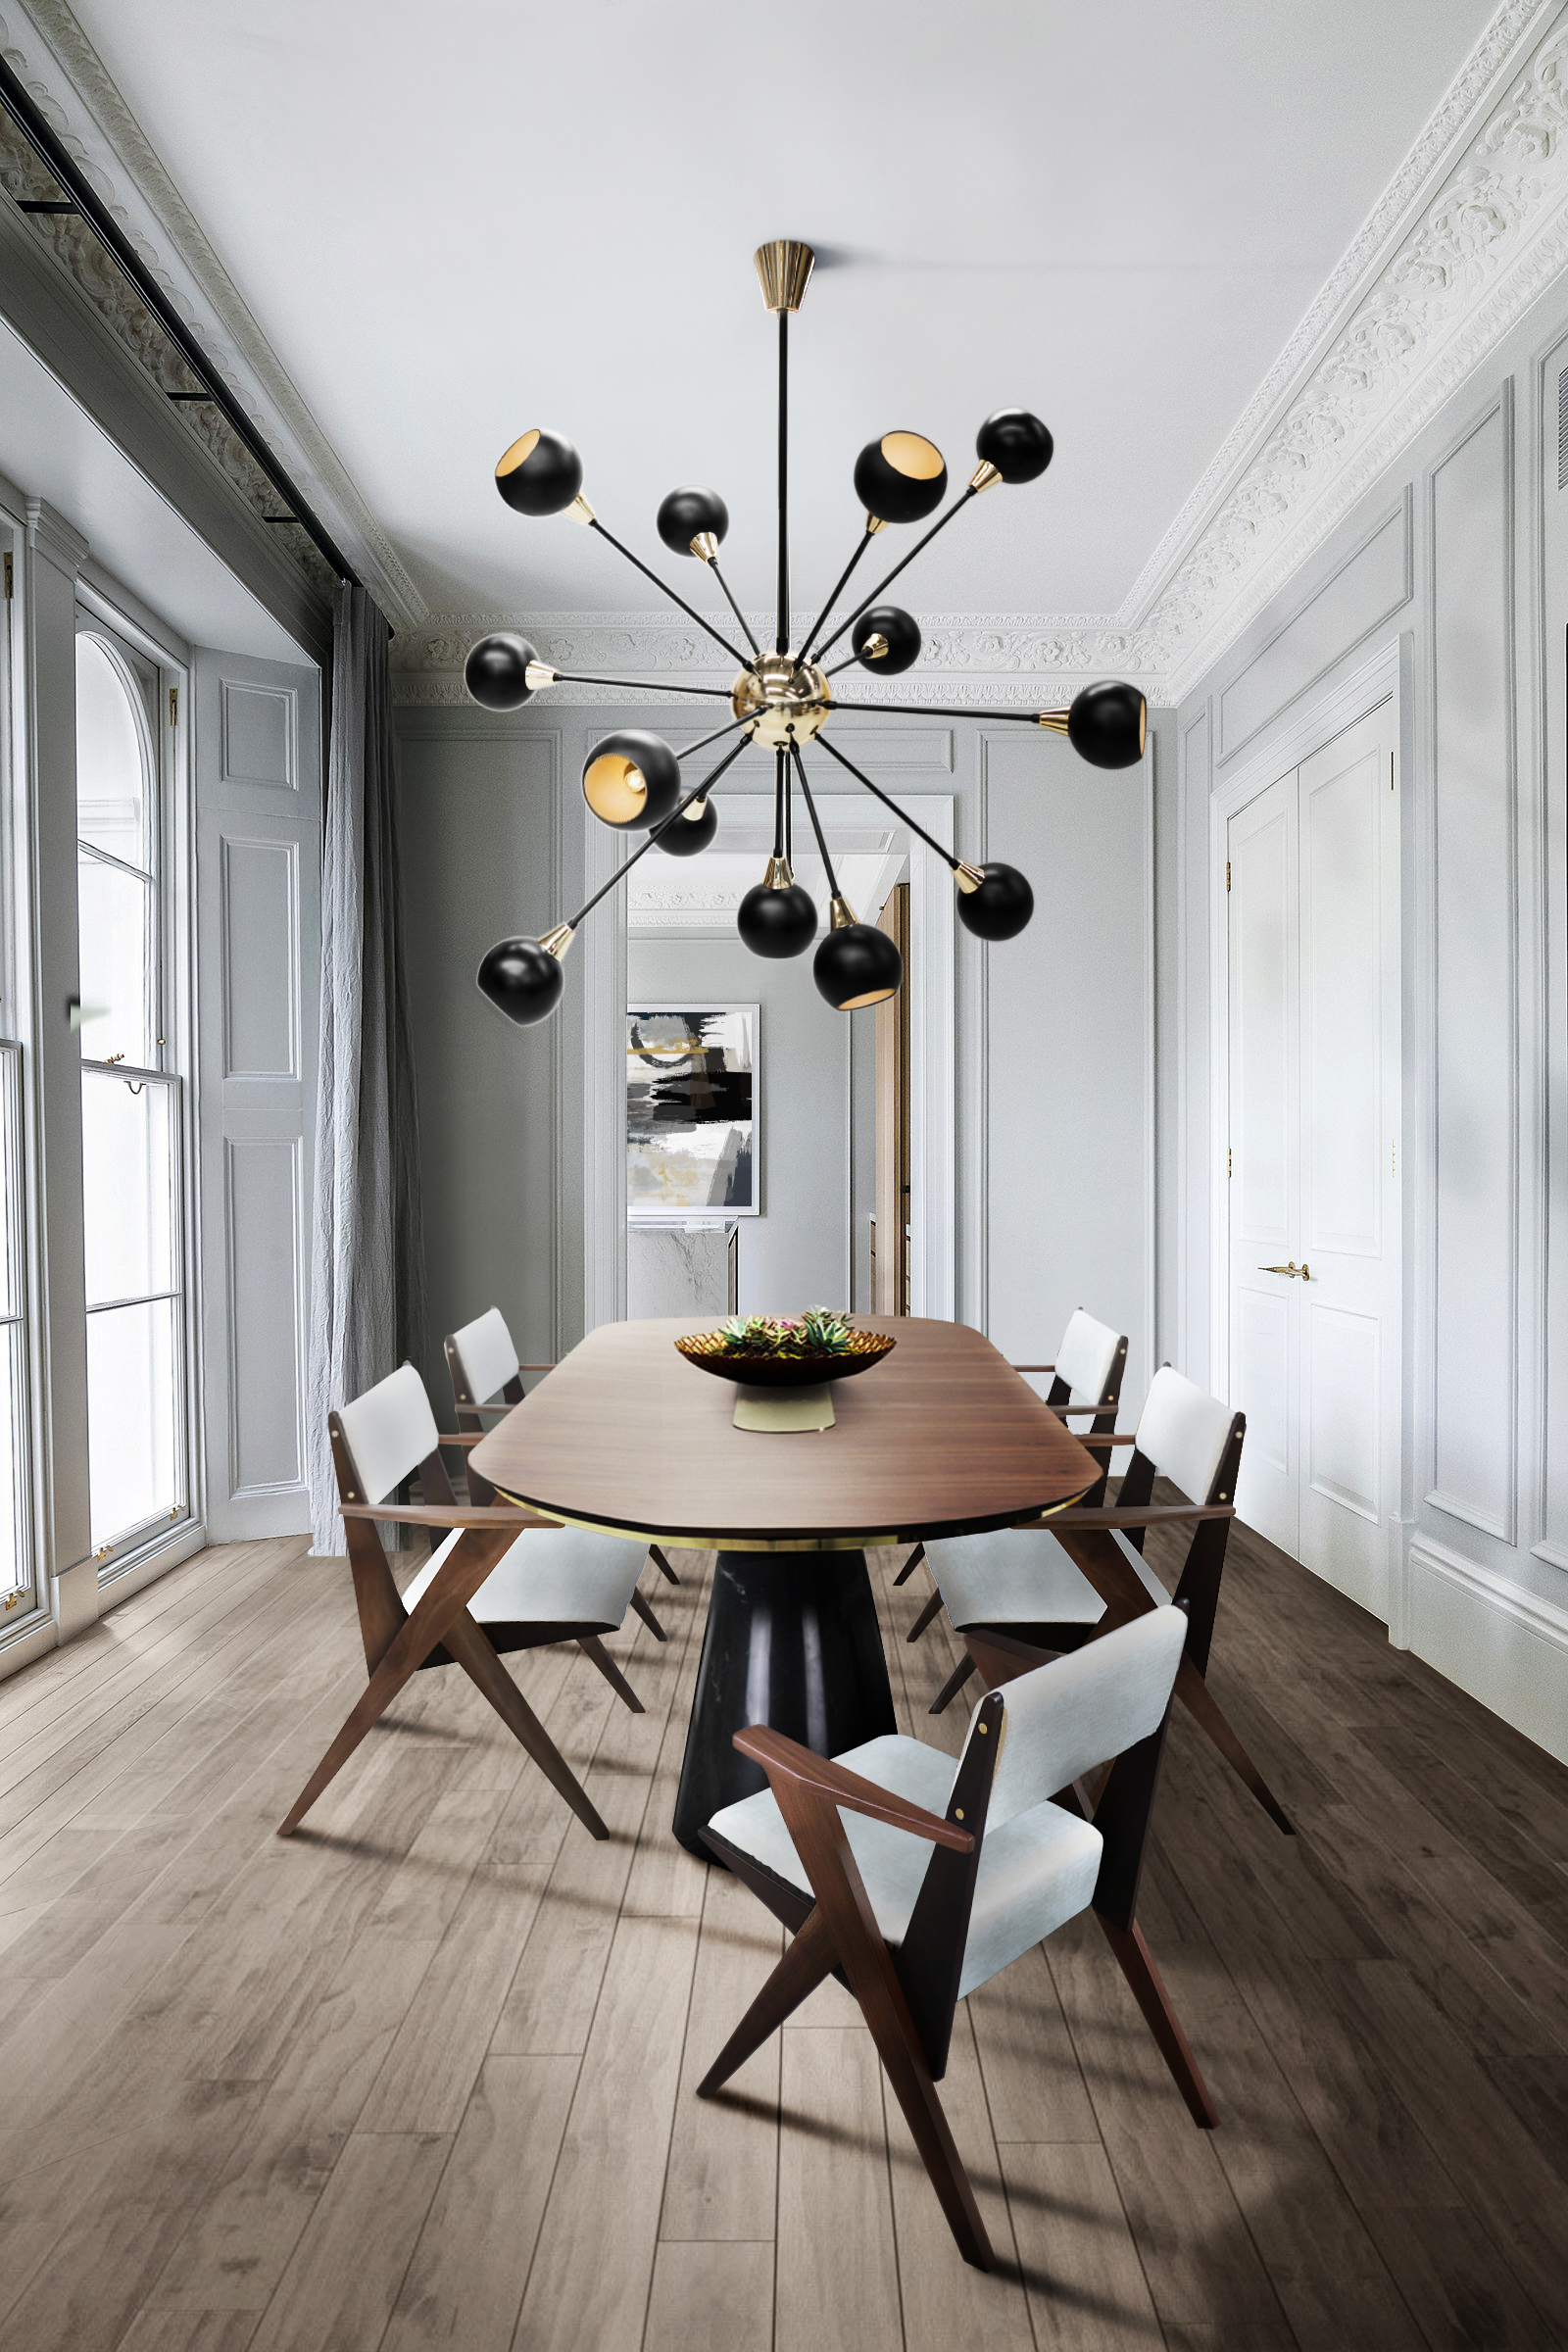 CREATE AN ELEGANT DINING ROOM DESIGN